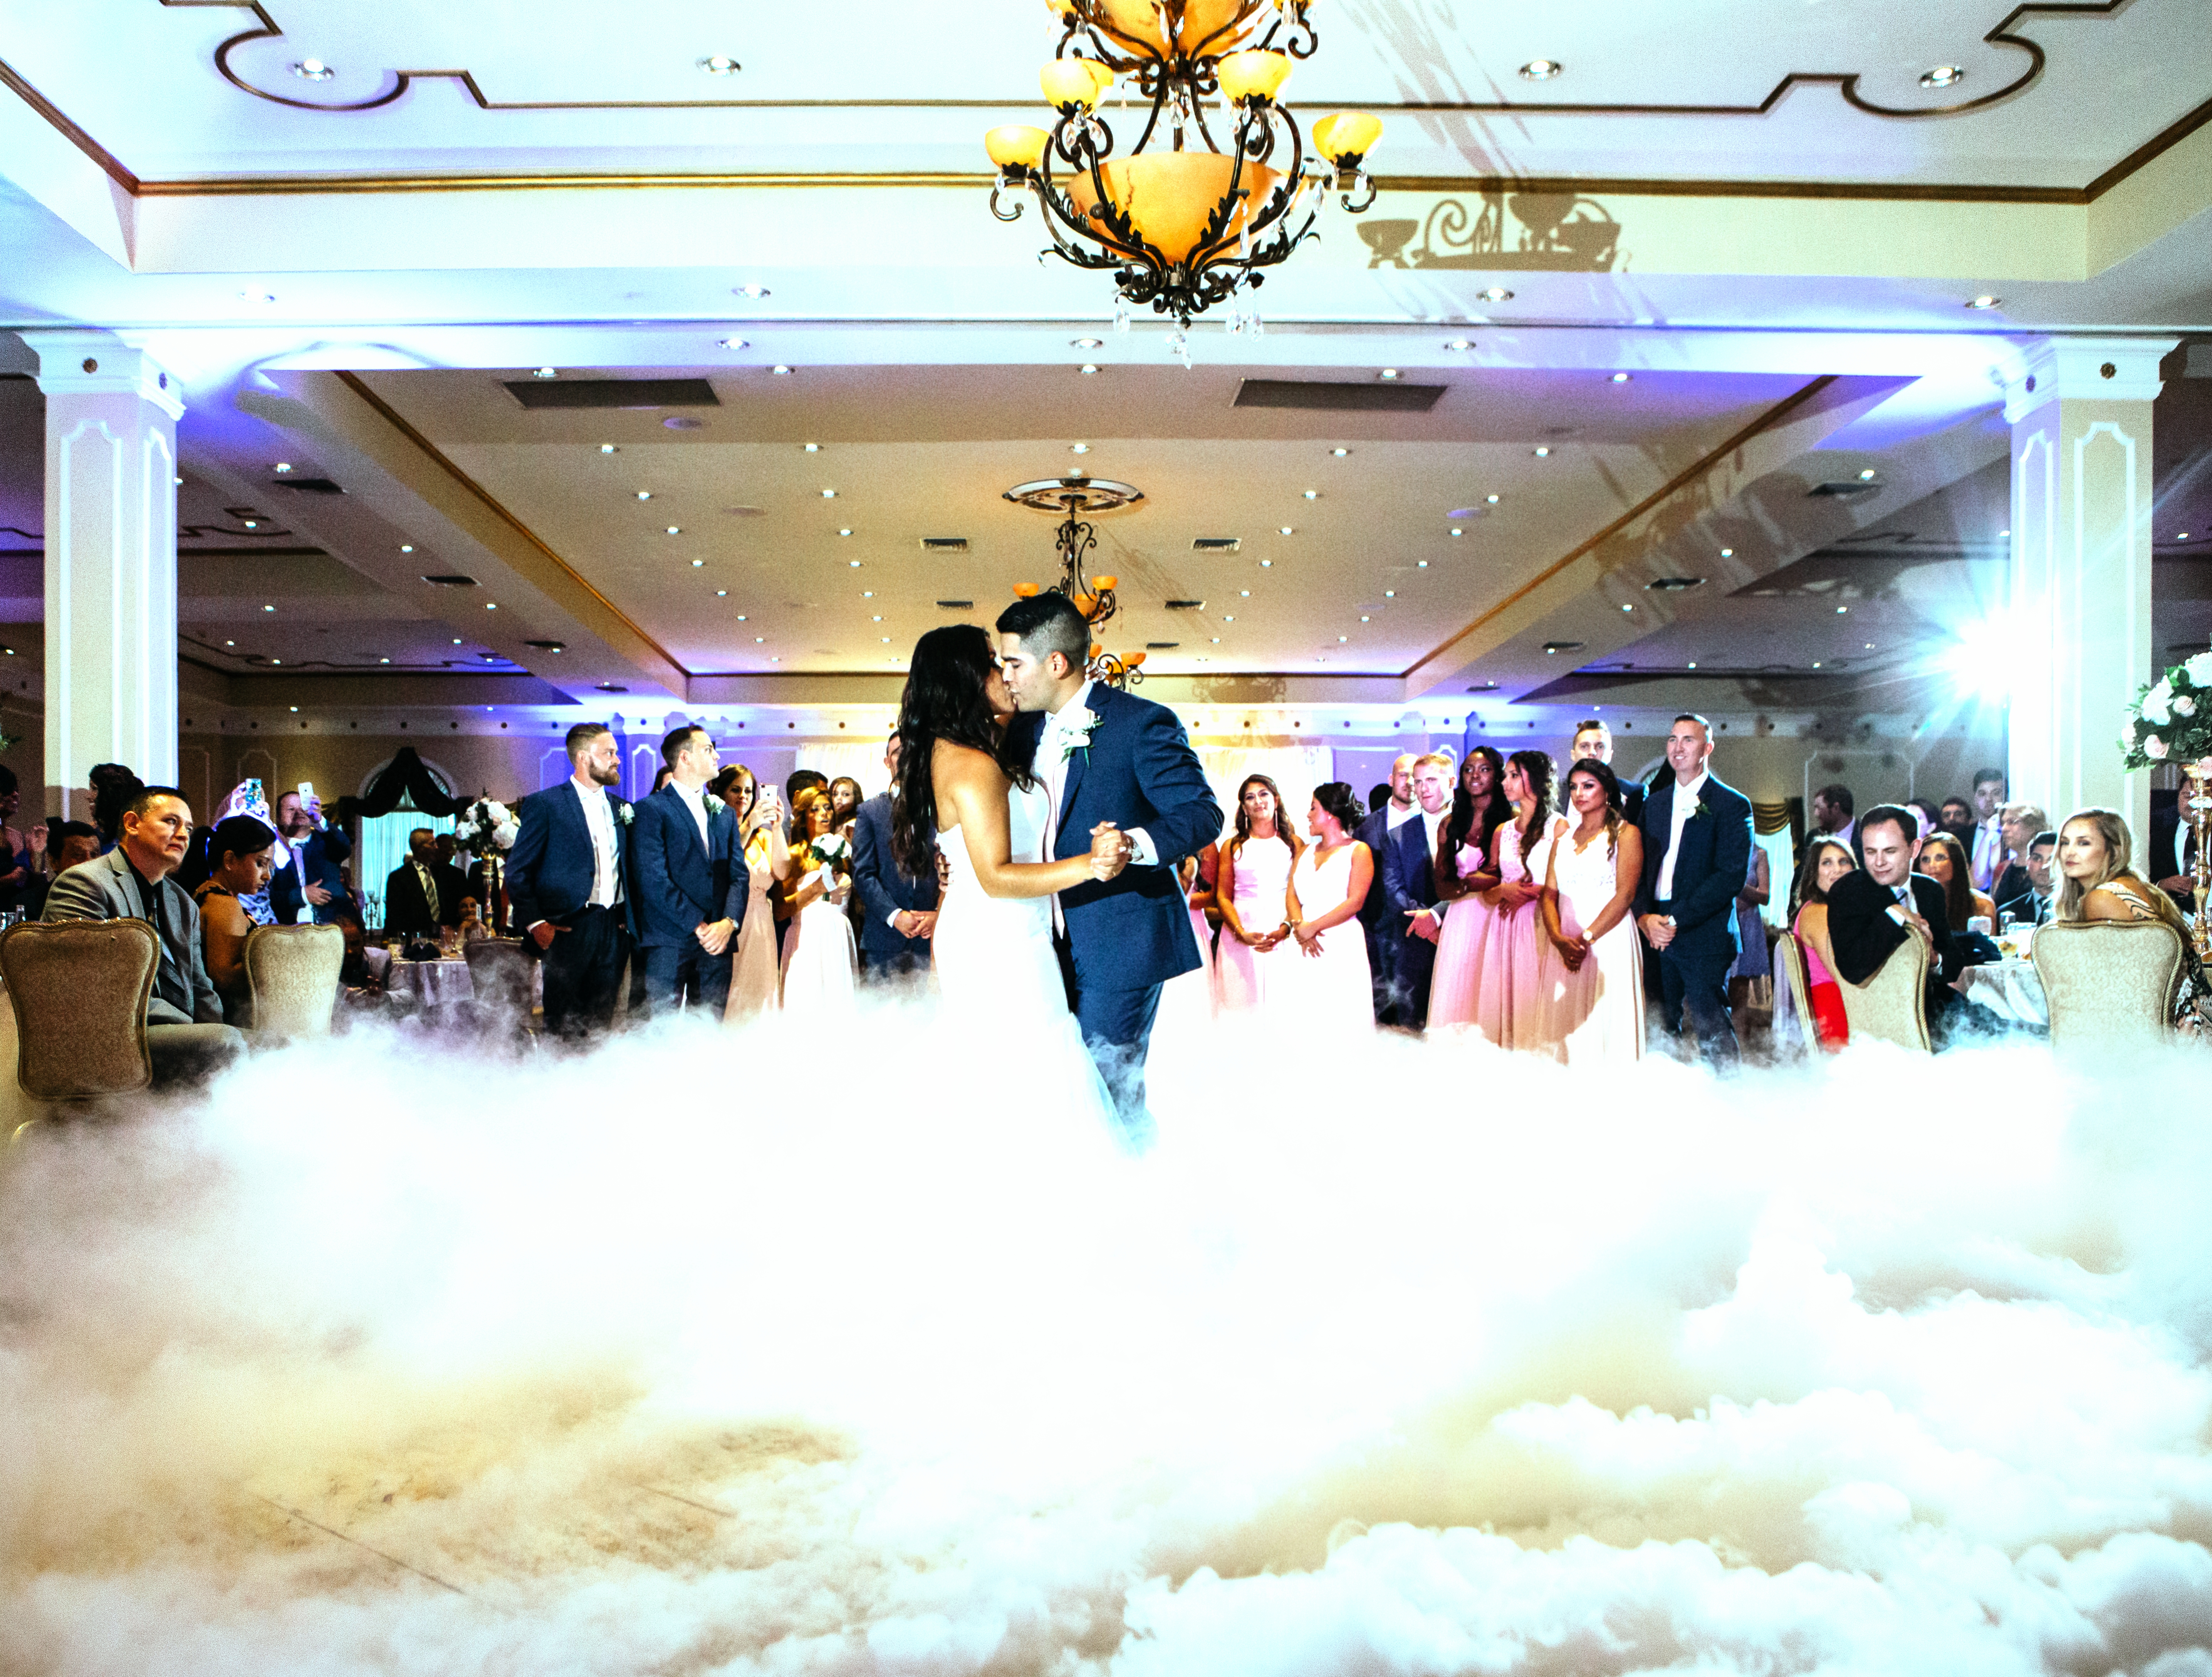 Wedding photographer TWK Events